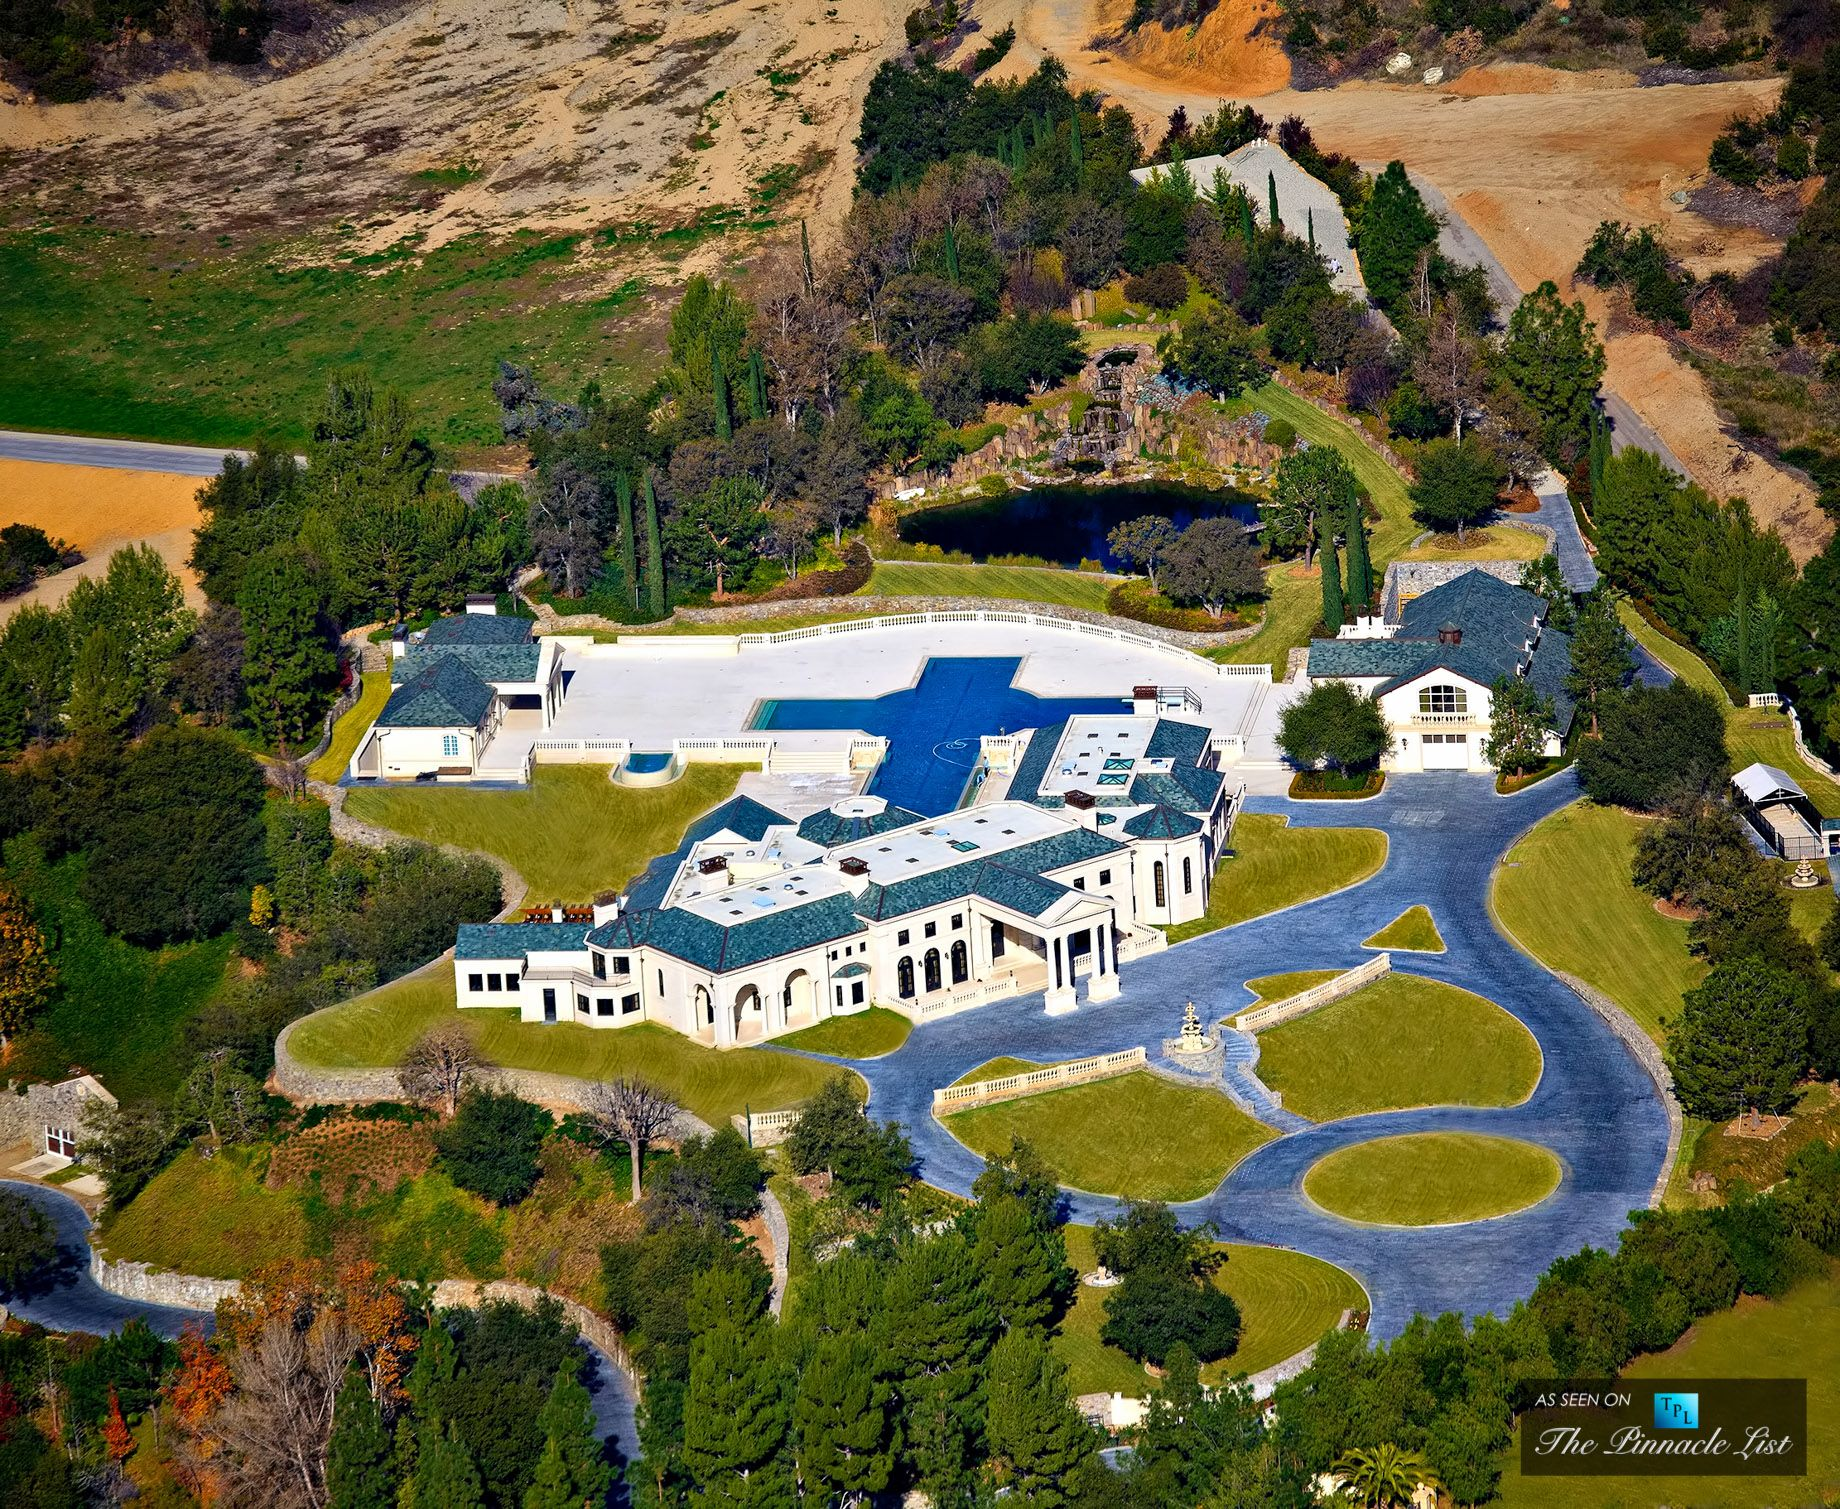 palladian estate, san gabriel valley: $79million #24 most